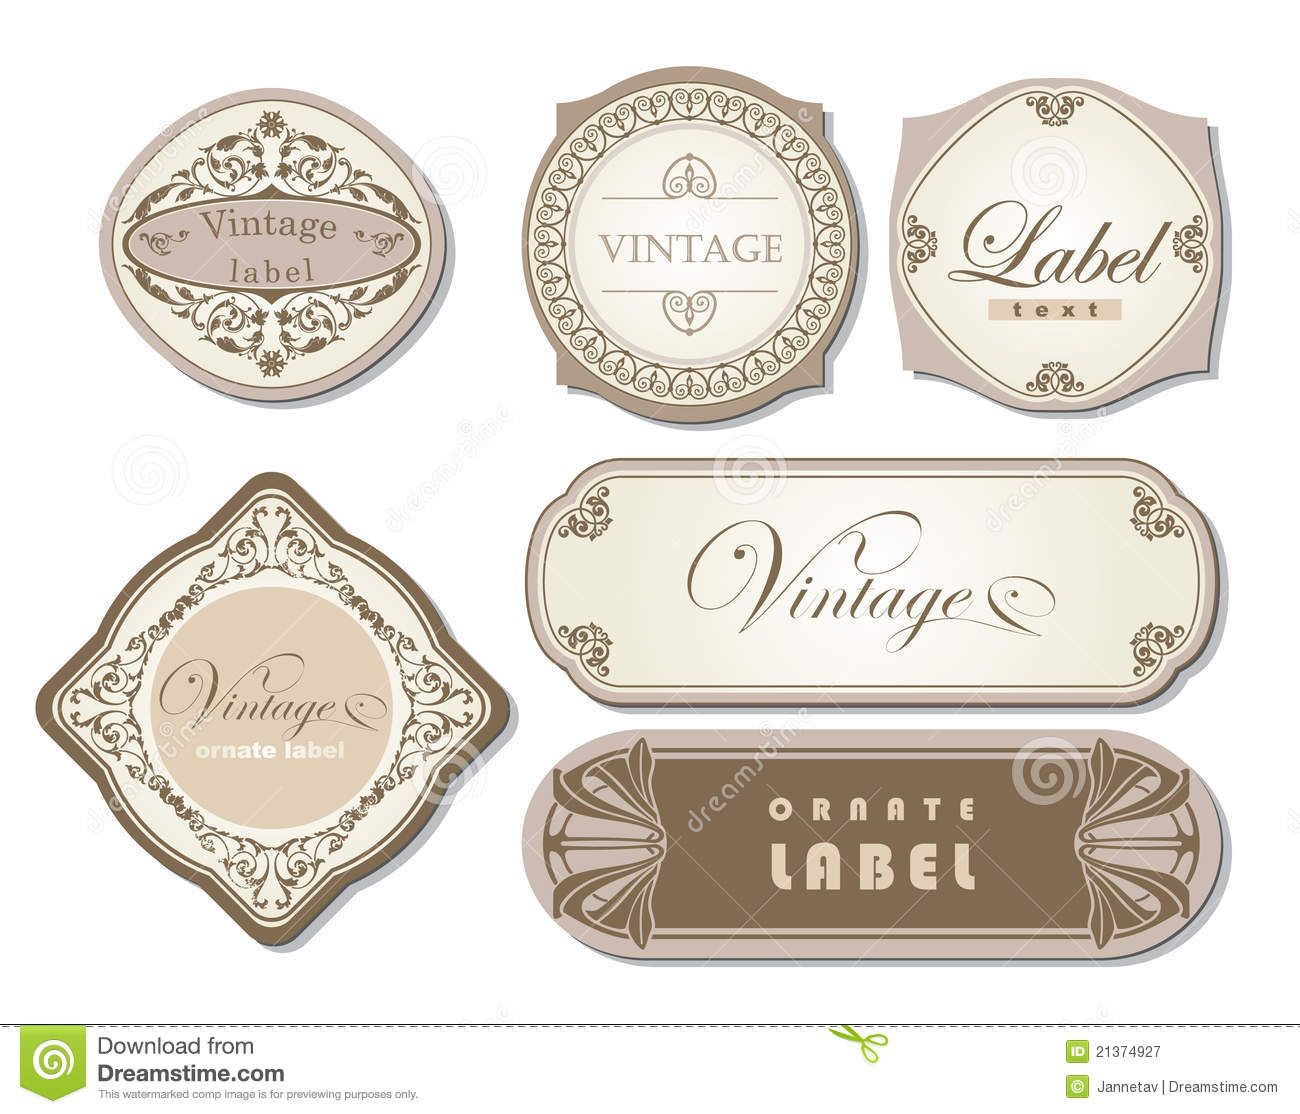 Candle Label Templates Free  Google Search  Templates